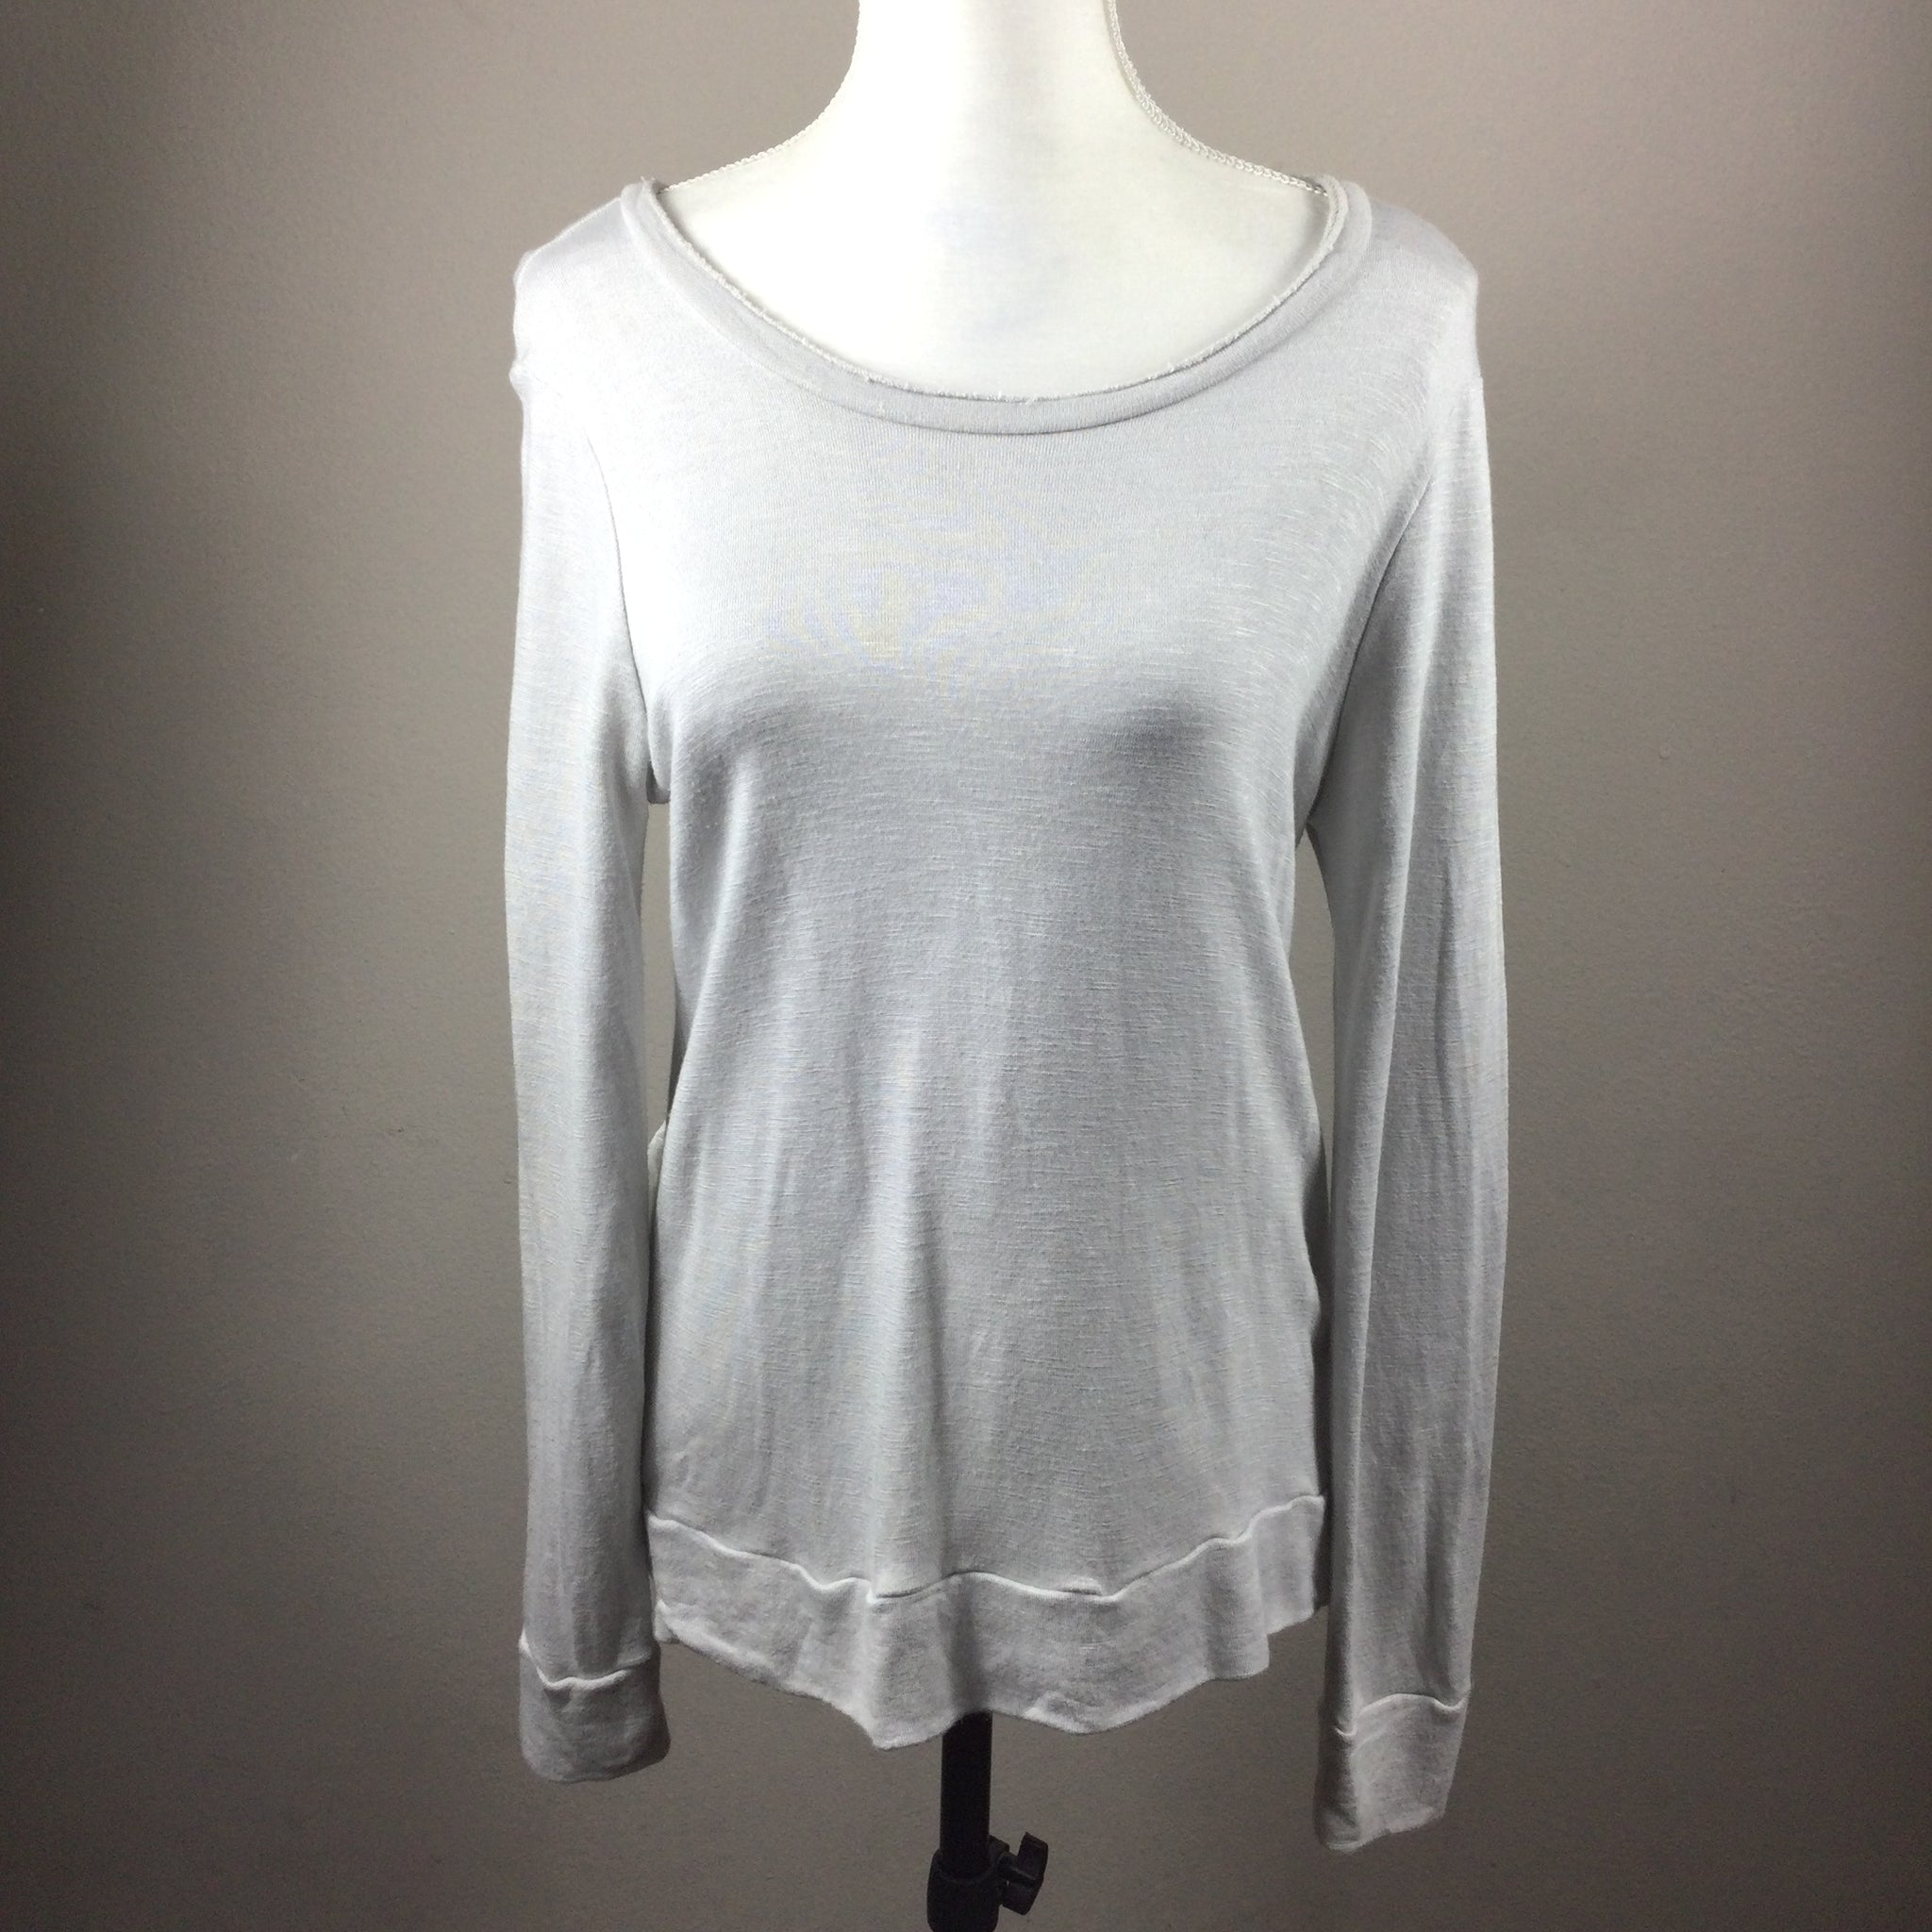 Chelsea 28 Gray Ruffle Back Sweatshirt Size Small